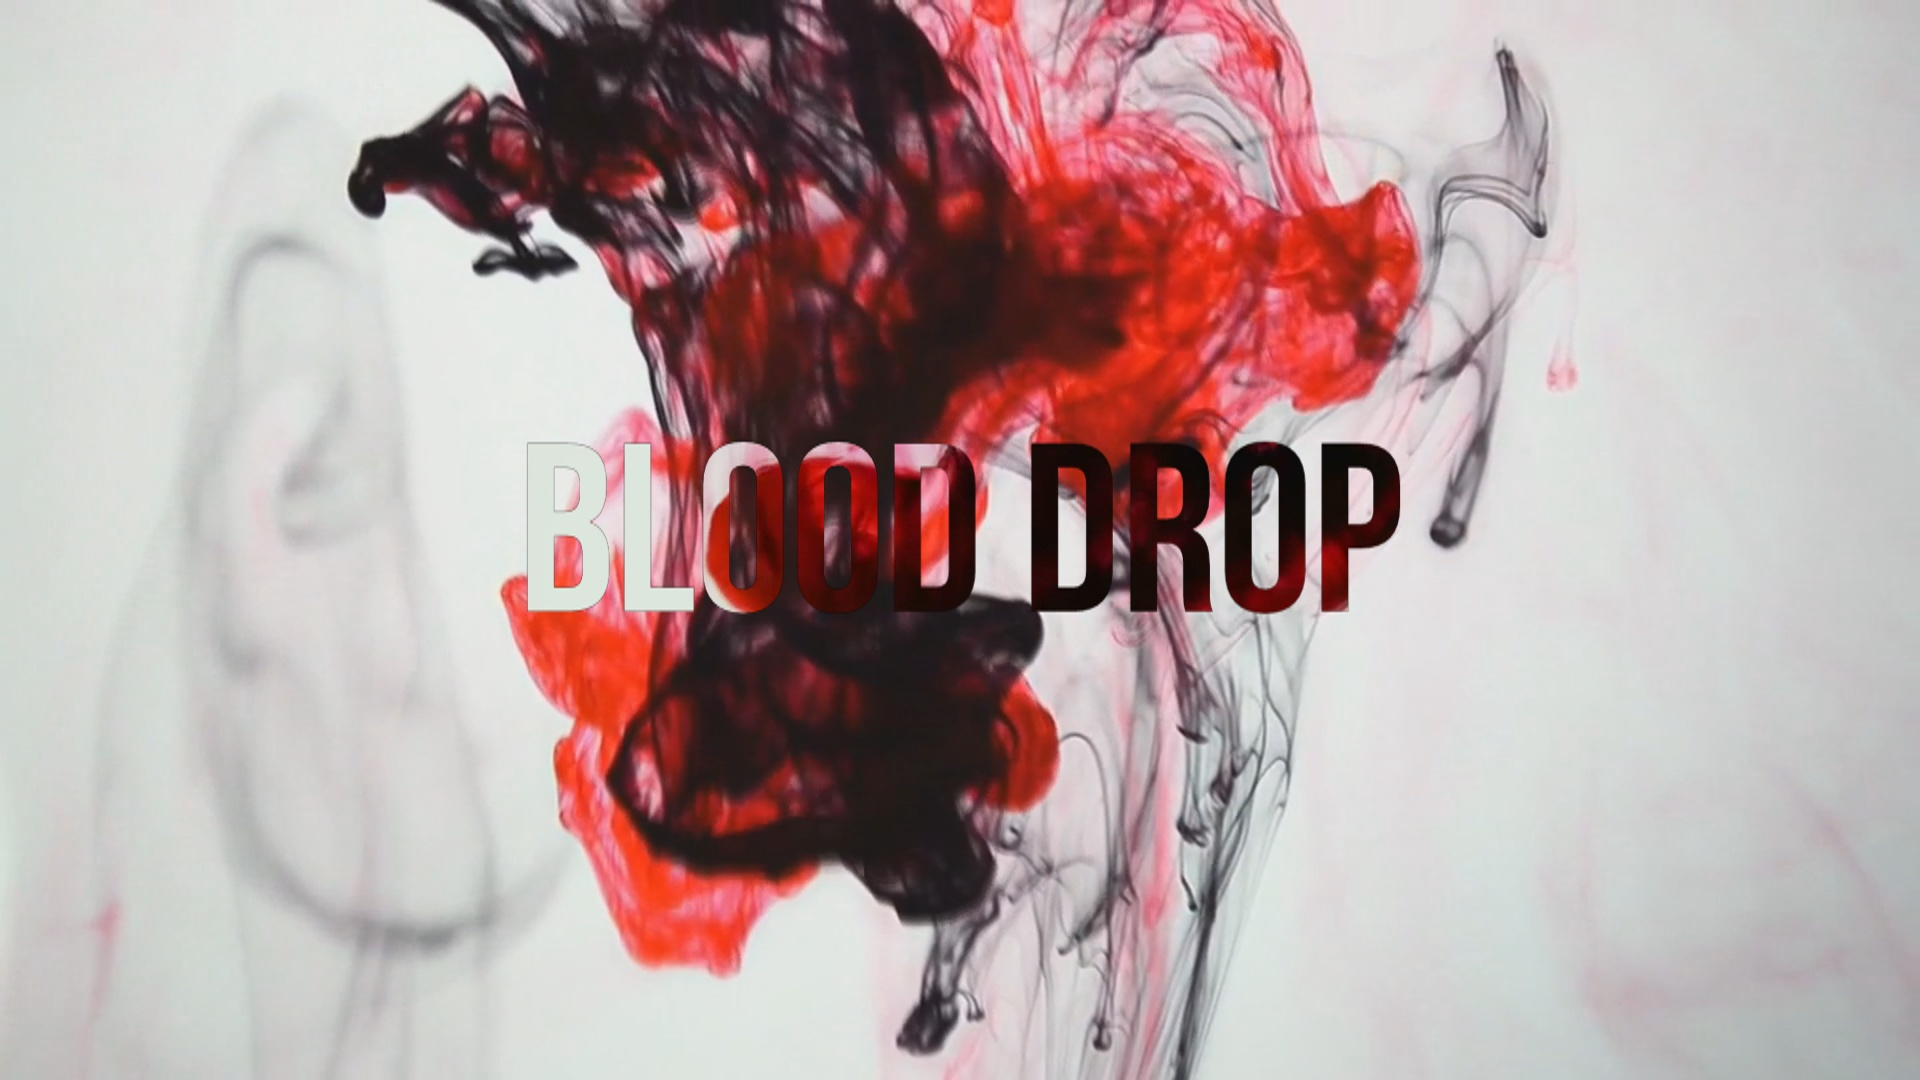 blood drop intro template #71 sony vegas pro – rkmfx, Powerpoint templates